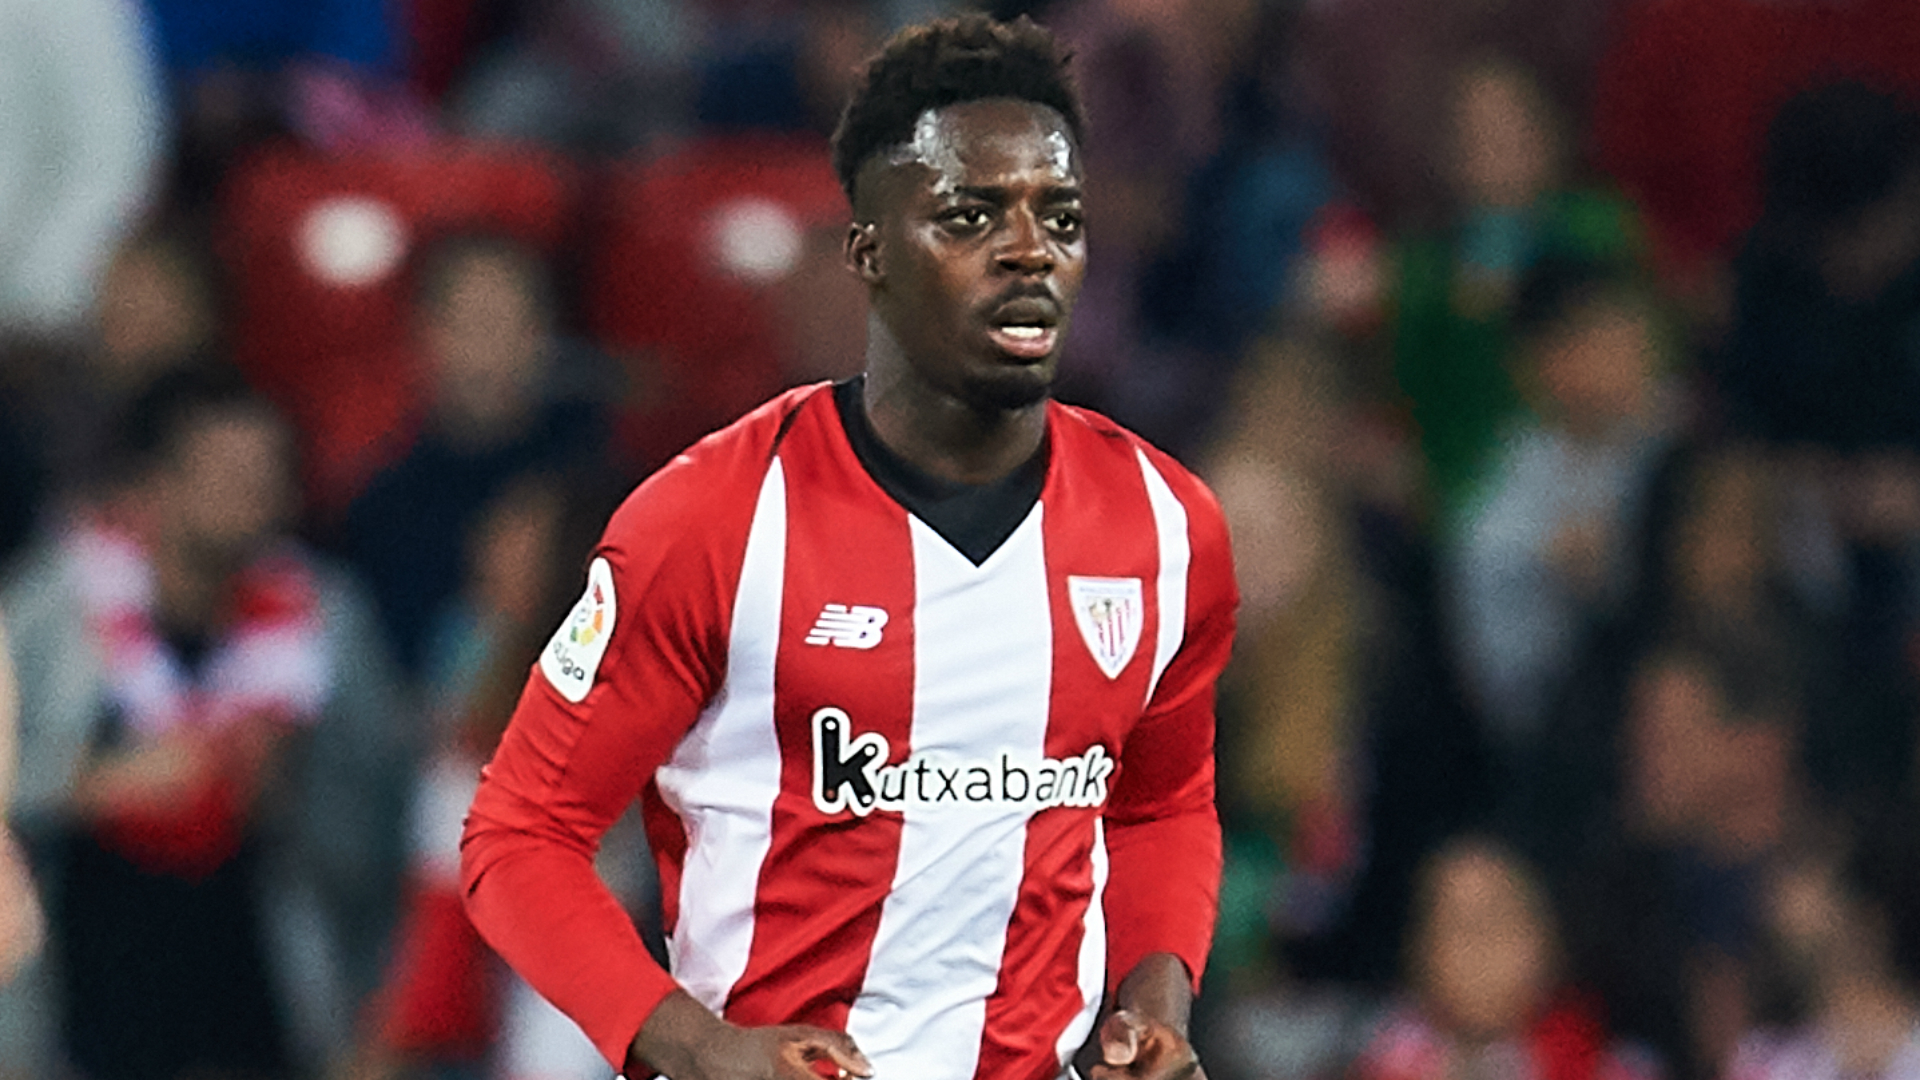 Athletic Bilbao star Inaki Williams, 25, discussed rumours linking him to Manchester United.